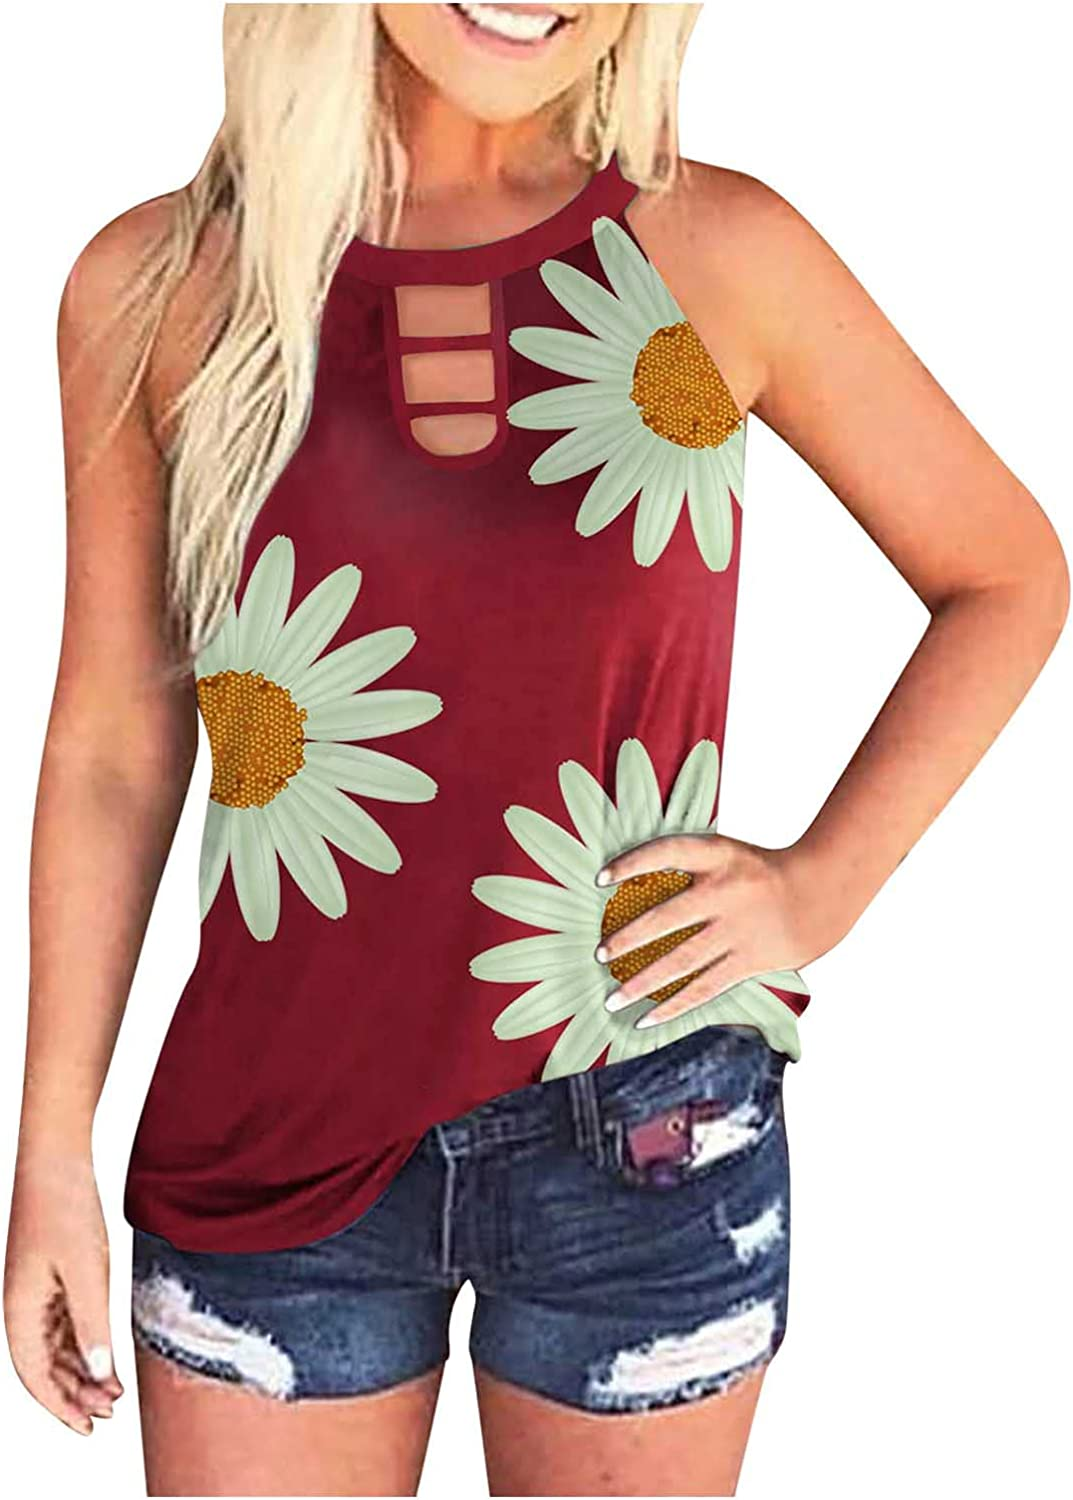 felwors Tank Tops for Women Casual, Womens Summer Sleeveless Tie-Dye Loose Fit Tee Shirts Tunics Blouses Vest Tops